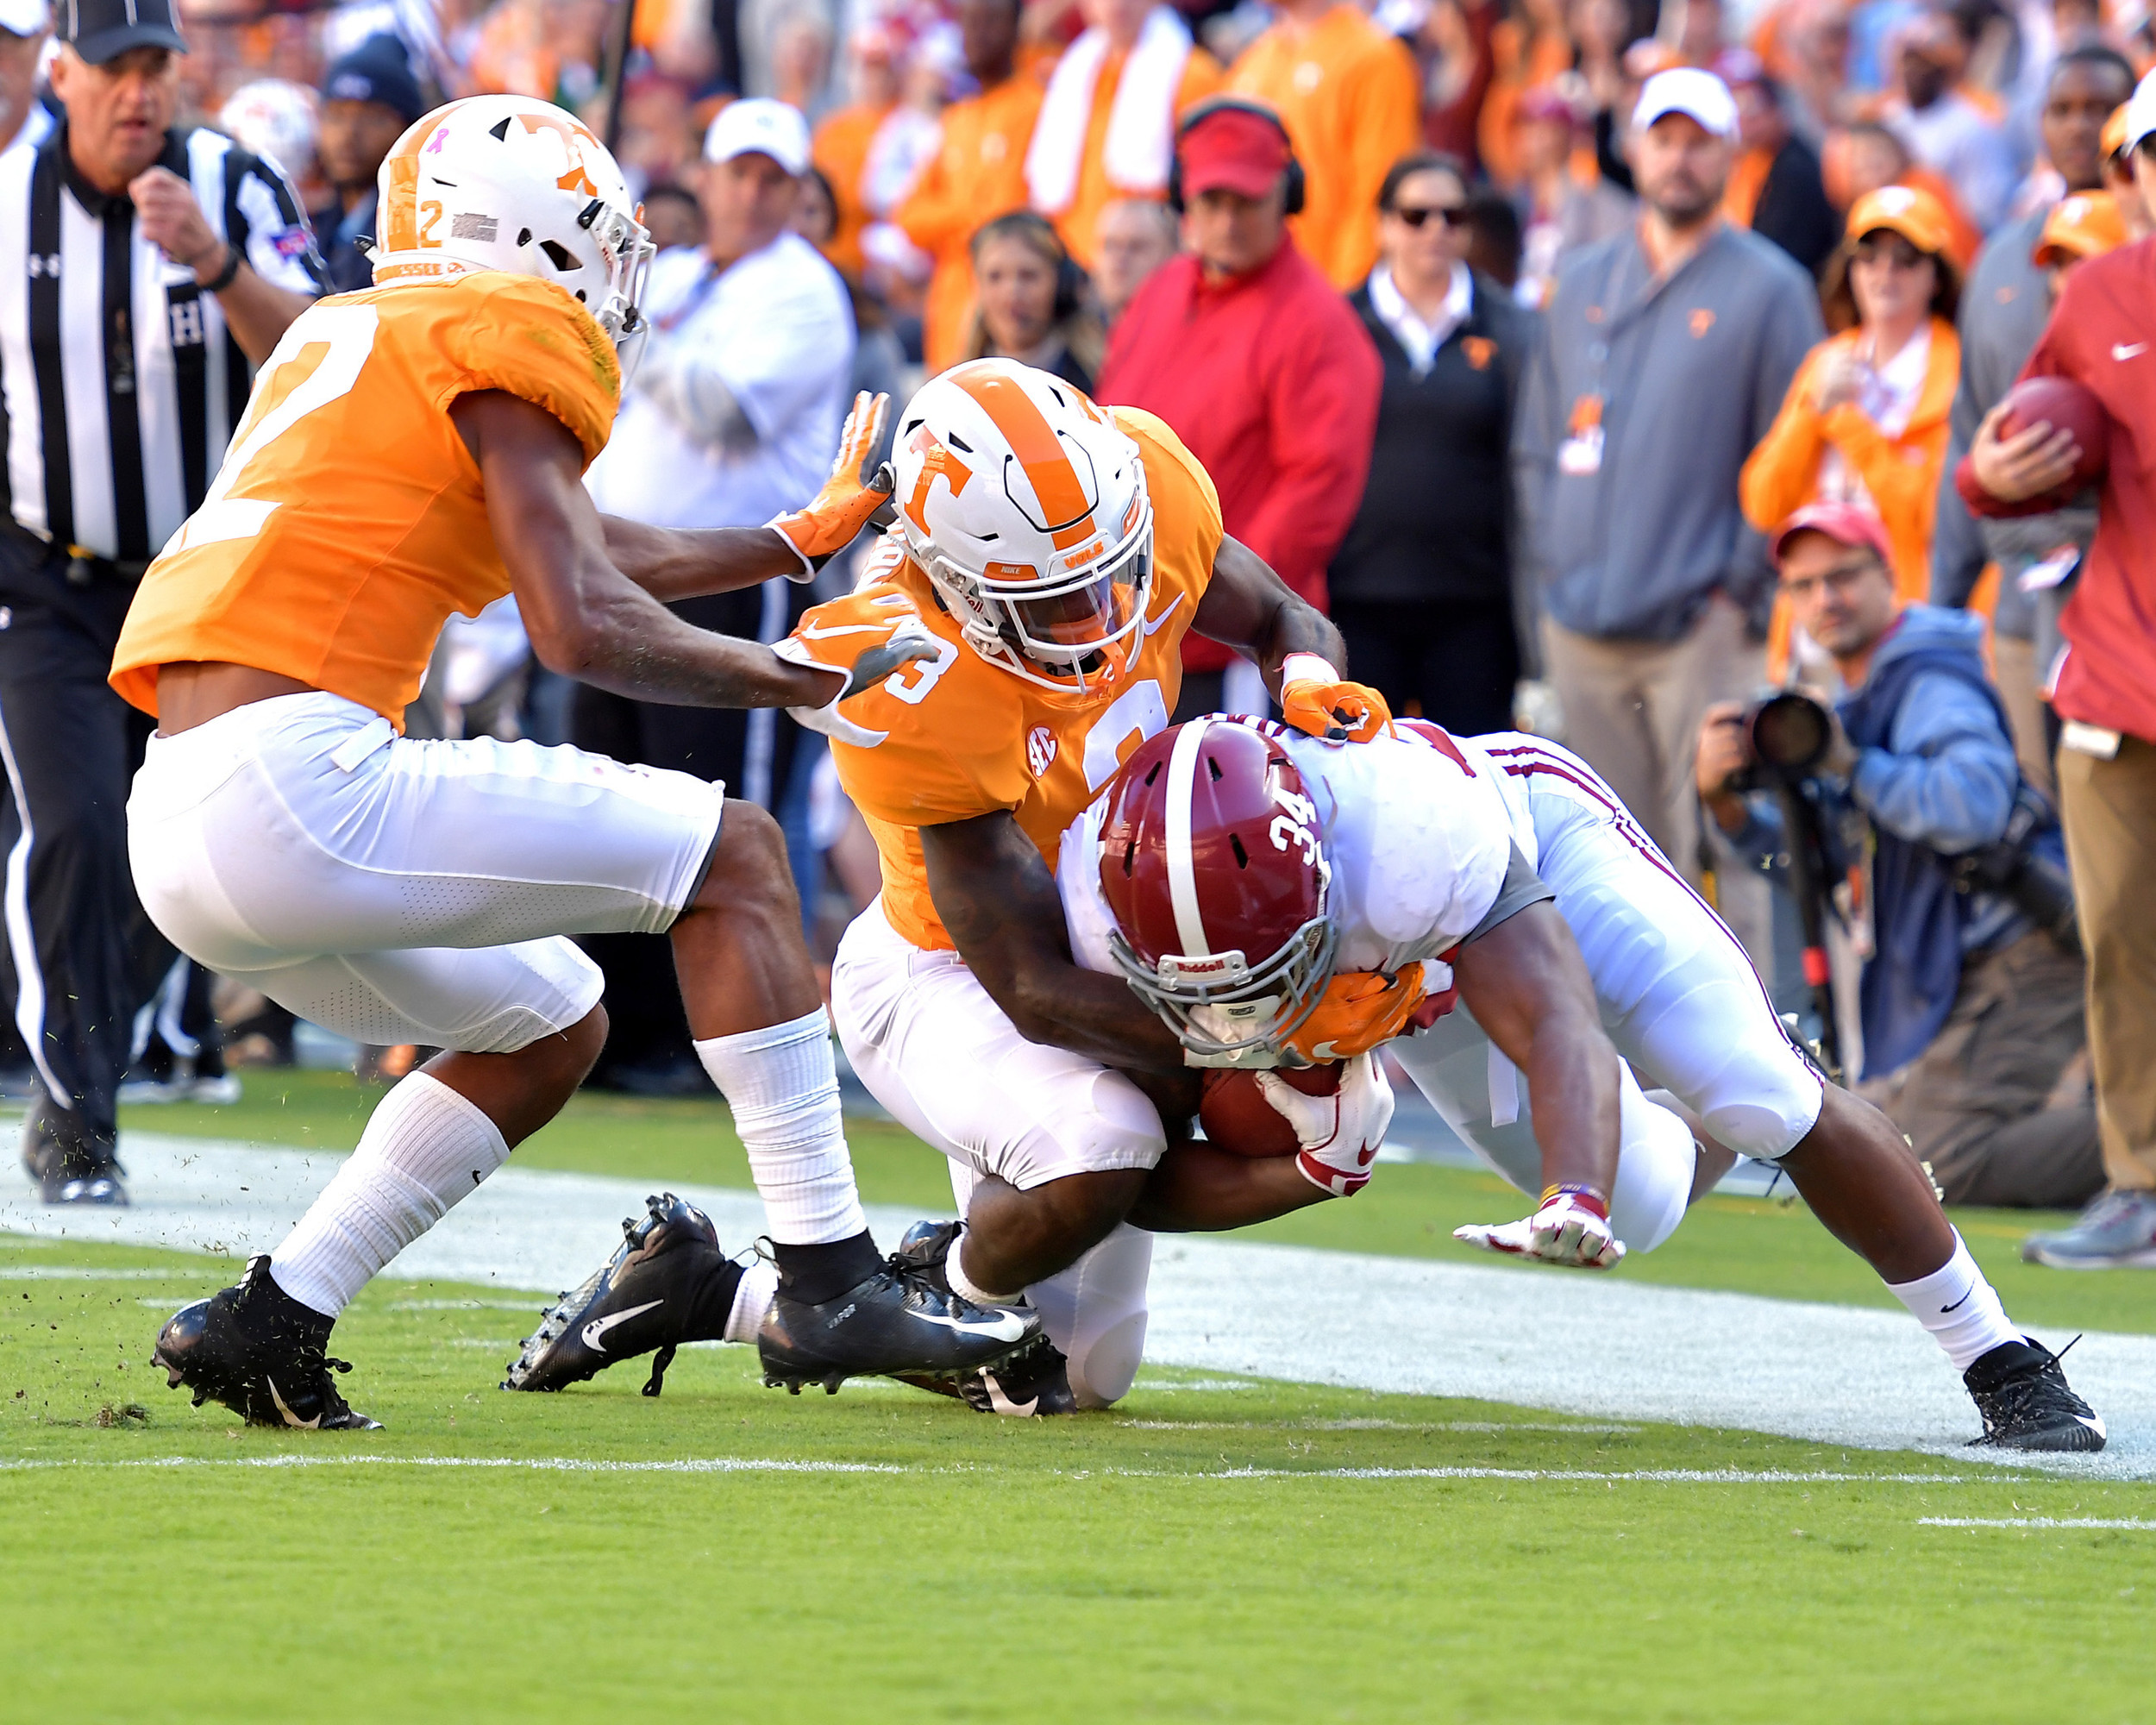 Alabama Crimson Tide running back Damien Harris (34) is tackled after a catch and a first down during first half of the Alabama at Tennessee NCAA football game on Saturday, Oct. 20, 2018, at Neyland Stadium in Knoxville. Tenn. Alabama wins 58-21. (Photo by Lee Walls)